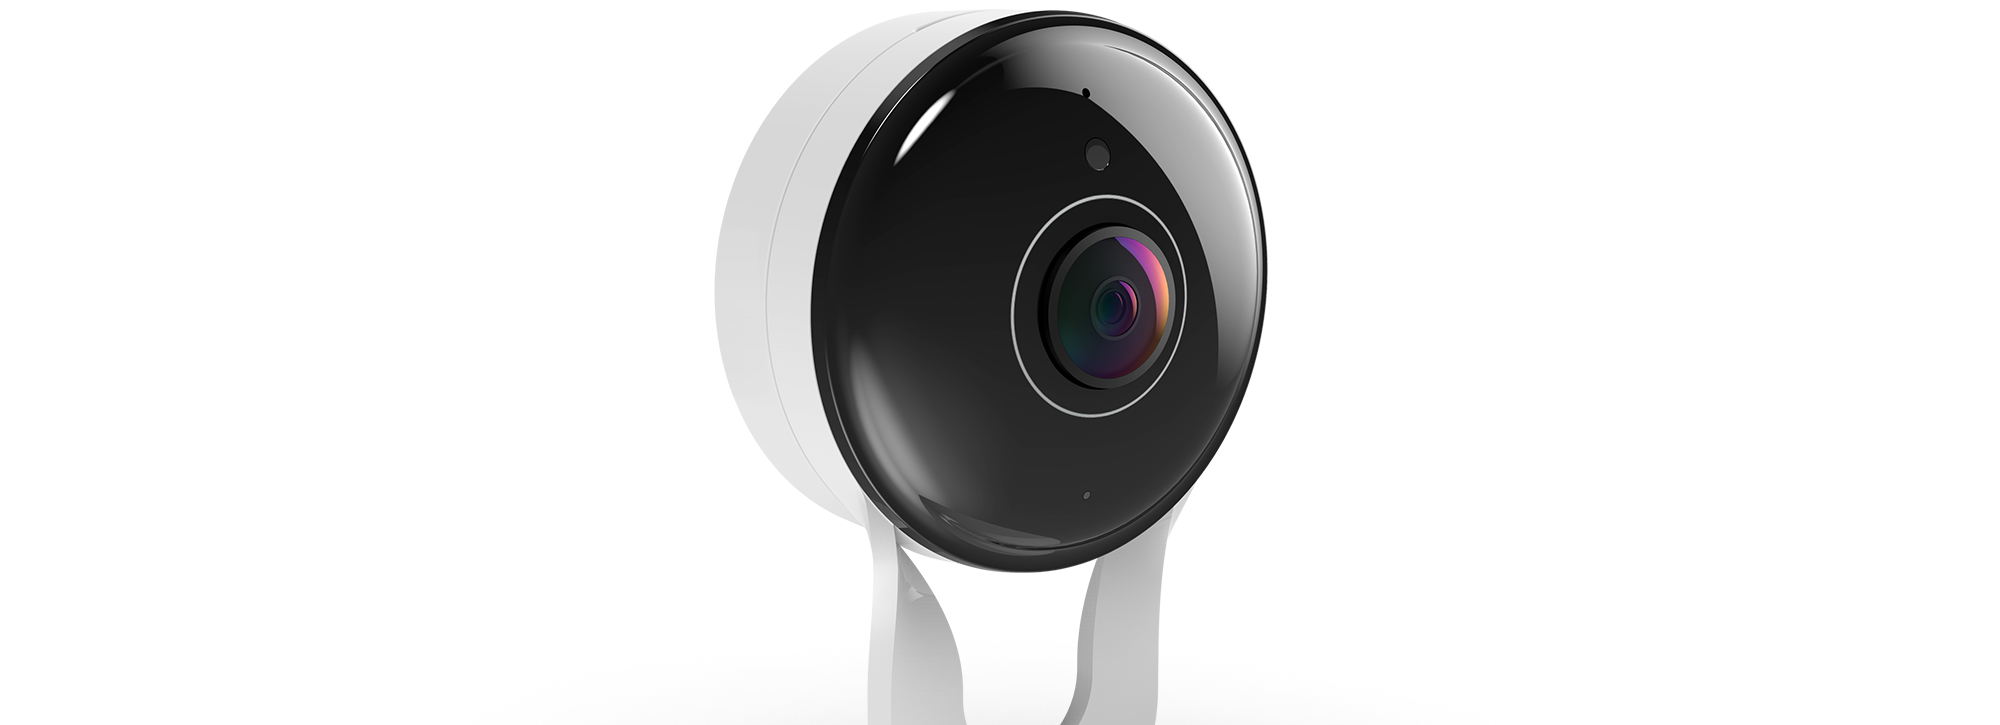 Side view of DCS 8300LH mydlink Full HD indoor Camera